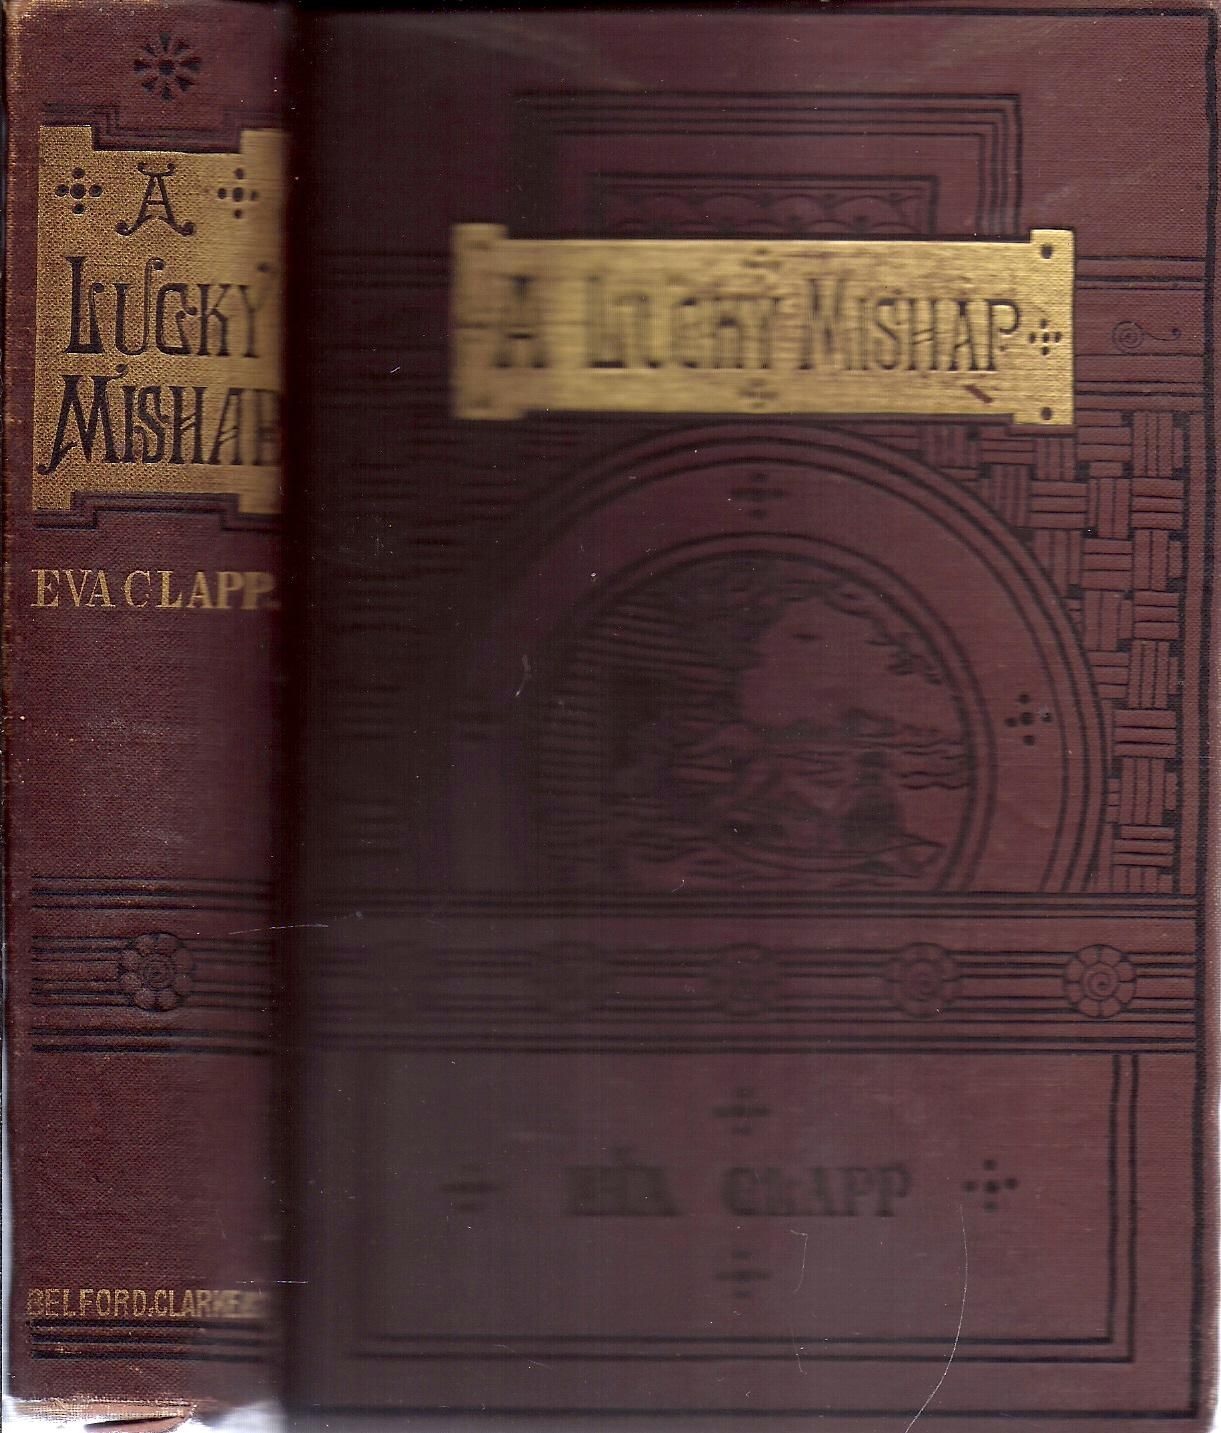 A Lucky Mishap book image